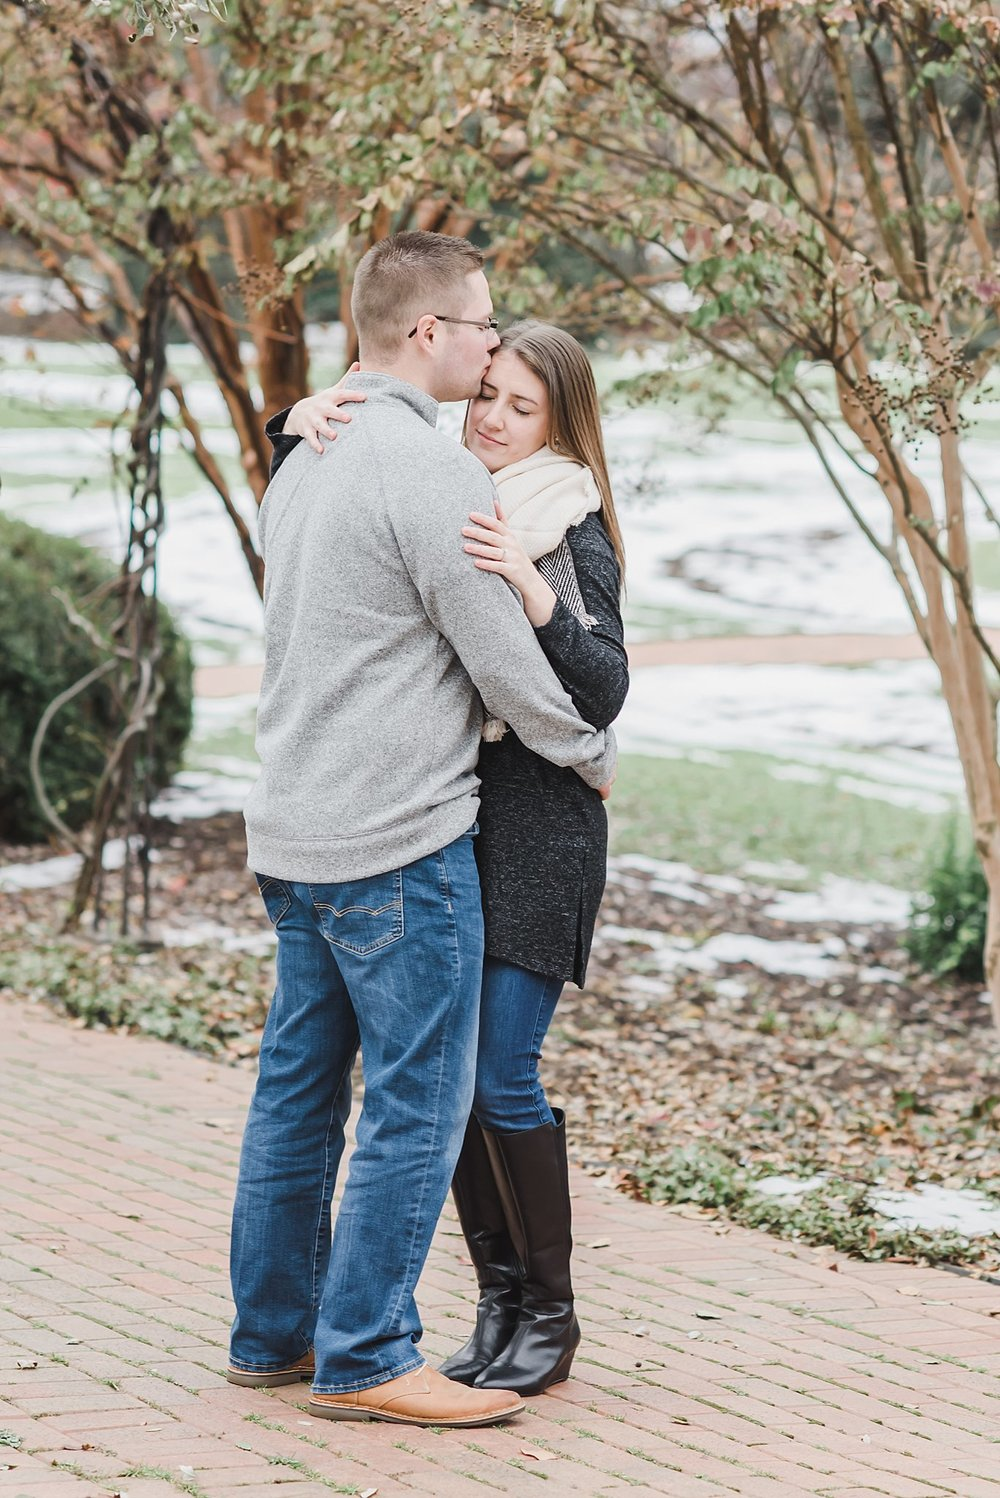 Hershey Gardens Winter engagement session Wedding Photography photo_0463.jpg